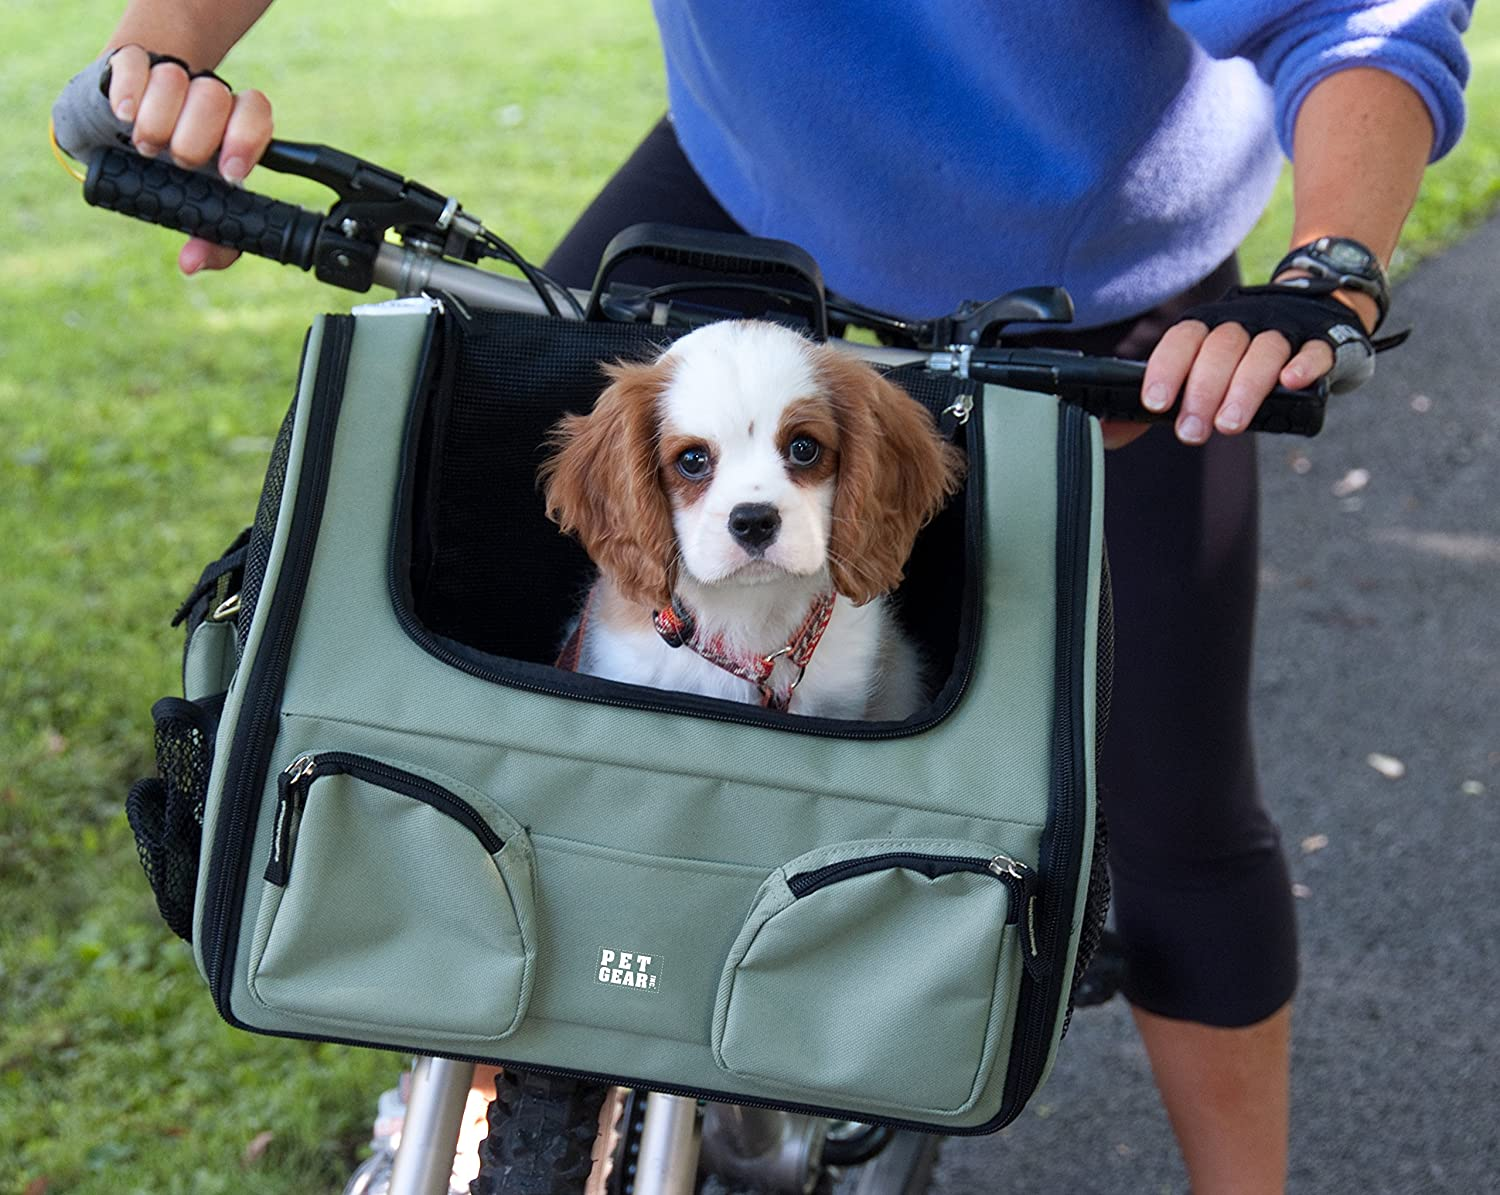 Pet gear pet bike basket 3 in 1 car seat carrier bike basket for cats and dogs up to 12 pounds tan amazon ca pet supplies